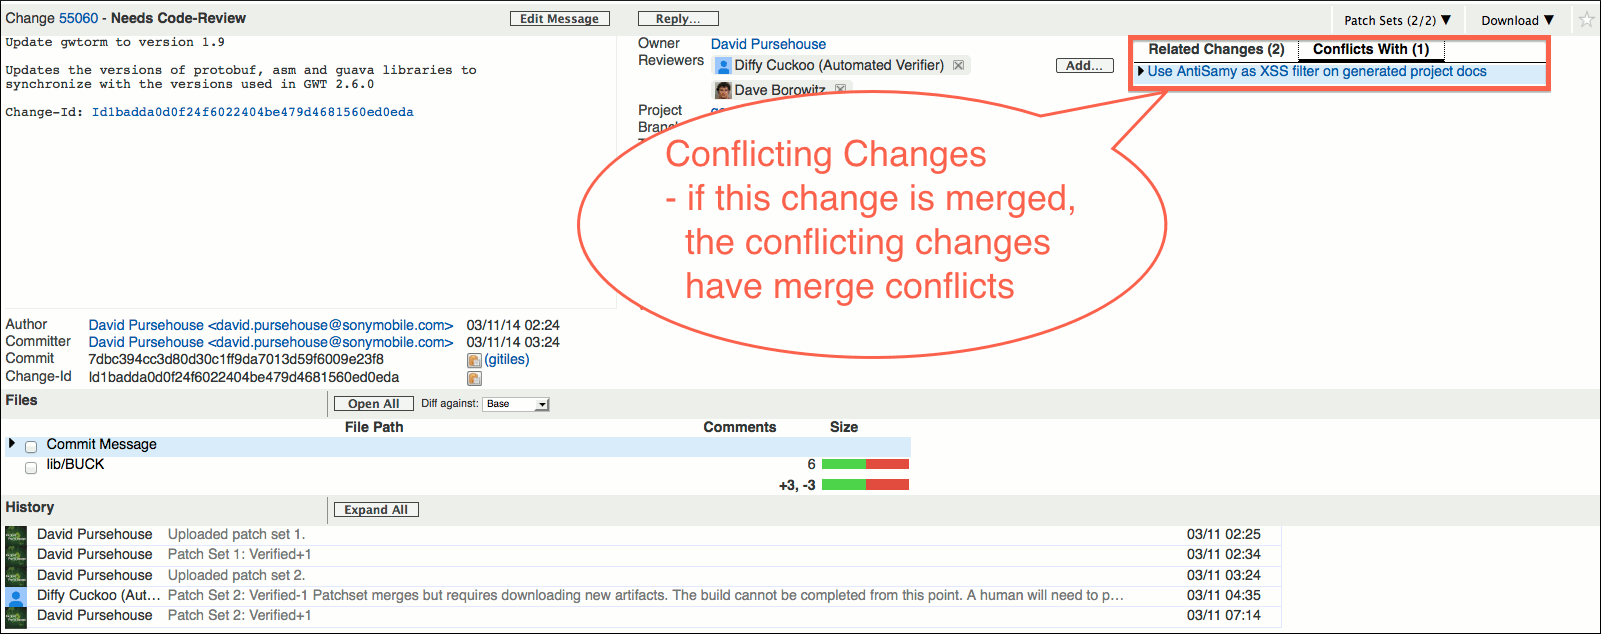 images/user-review-ui-change-screen-conflicts-with.png